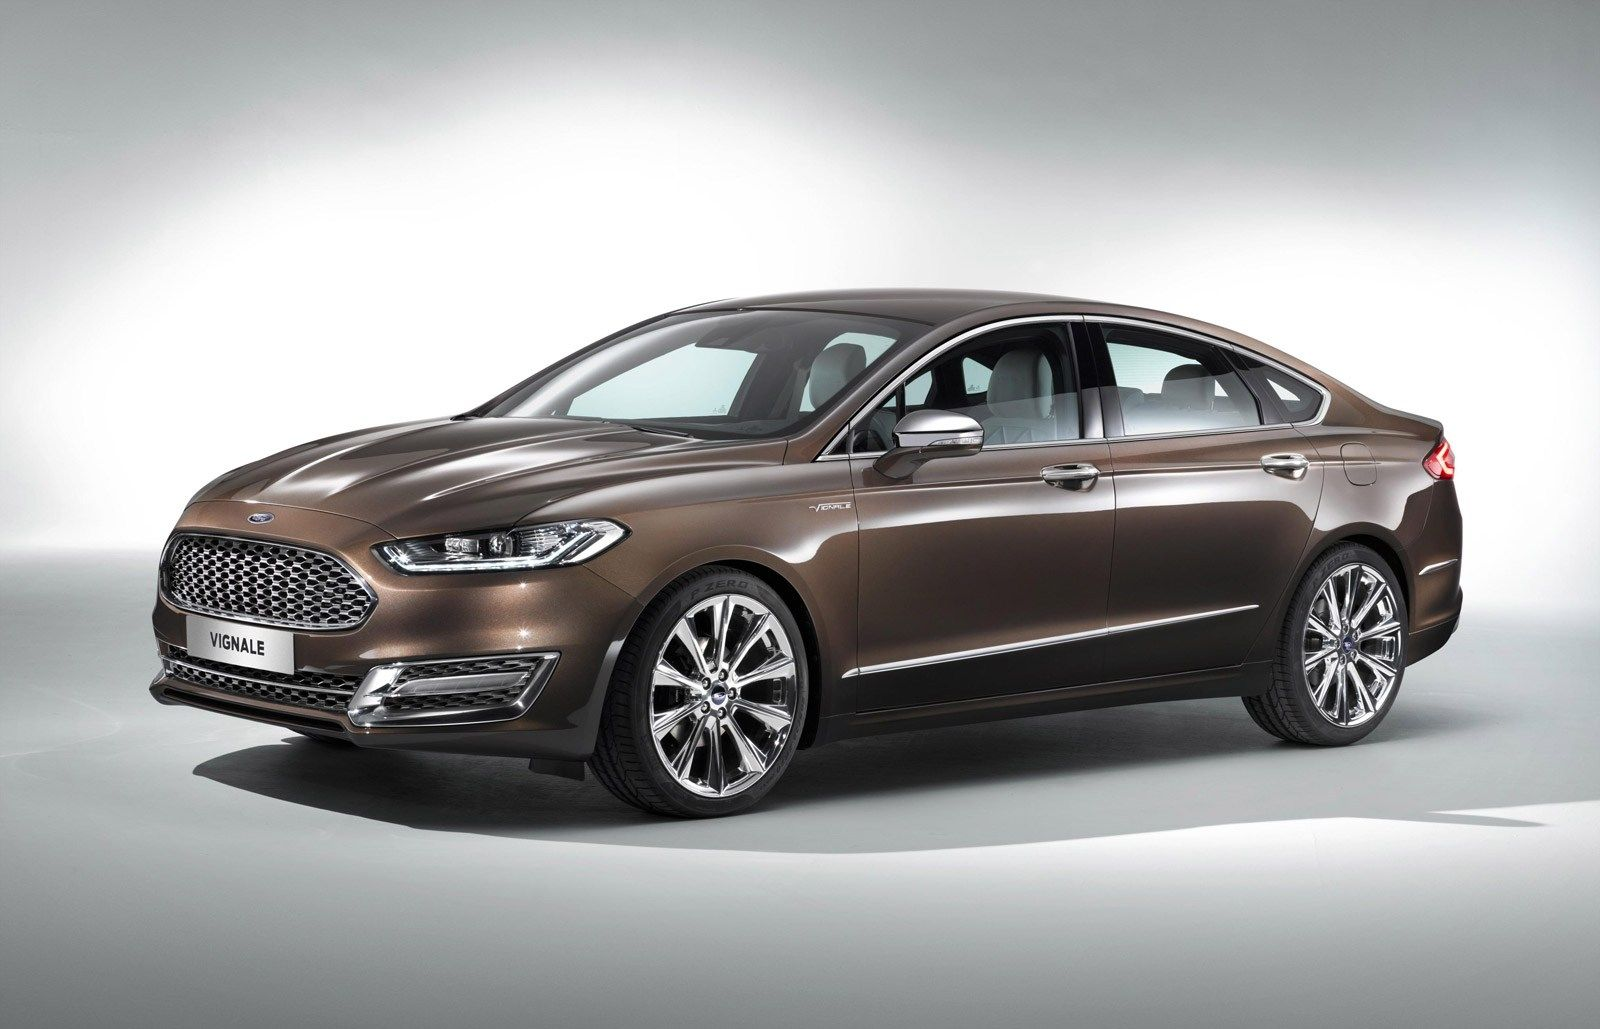 2020 Ford Mondeo Vignale New Release Ford mondeo, Car